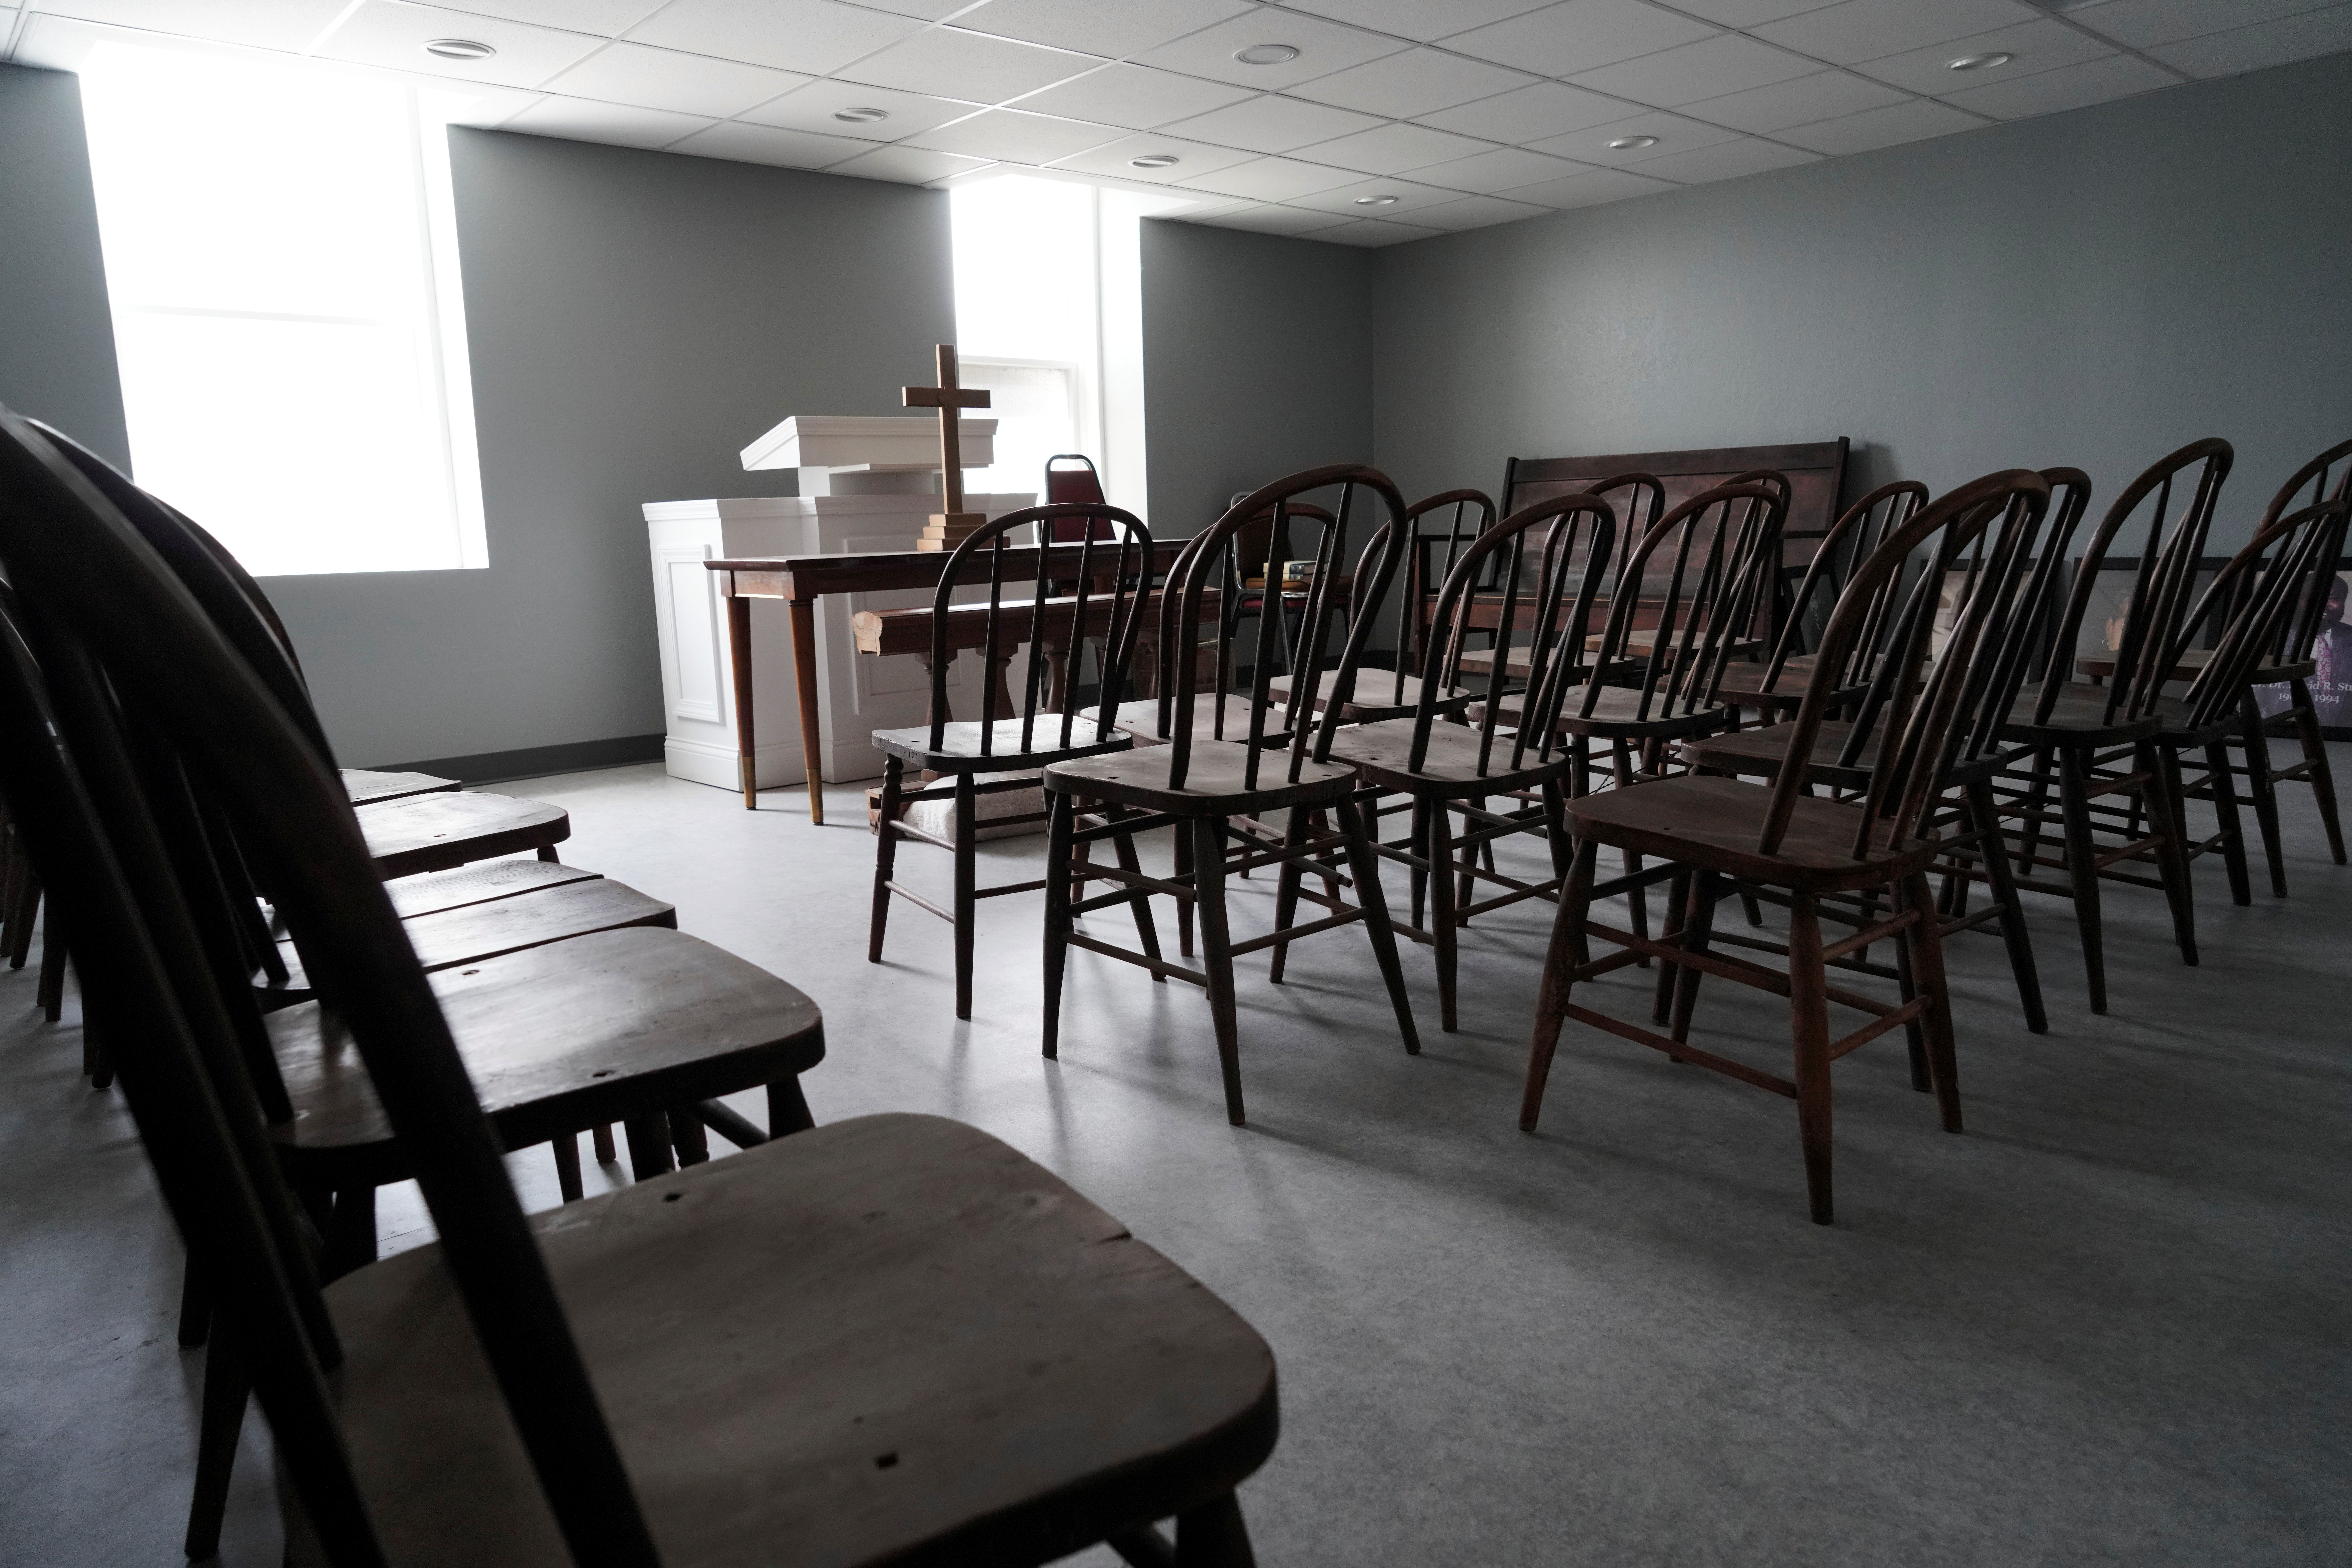 An altar and chairs, which were located in the basement of the original Vernon AME Church and the only part of the building to survive the 1921 Tulsa Massacre, sit in an empty prayer room in Vernon AME Church in Tulsa, Oklahoma, U.S., May 30, 2021. REUTERS/Lawrence Bryant